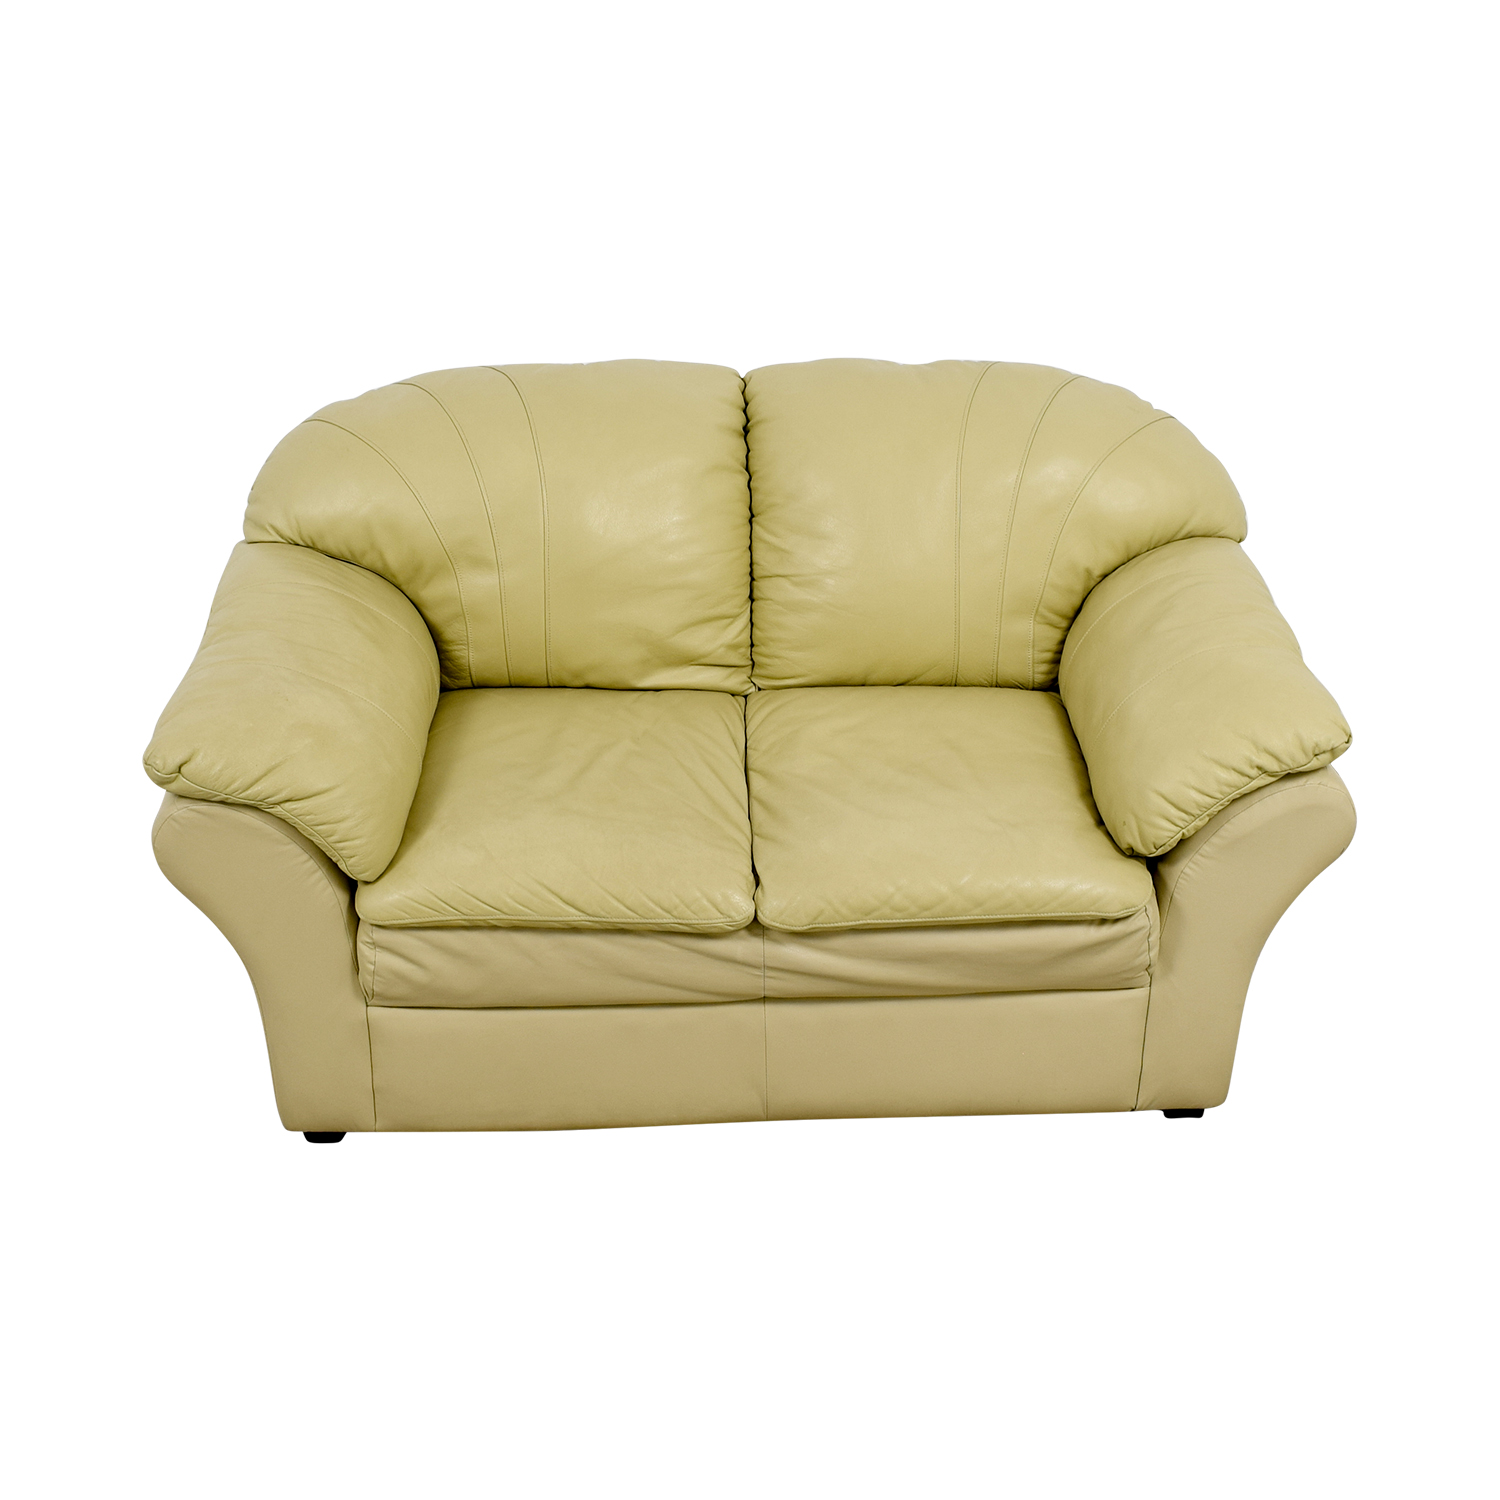 Mal's Brooklyn Furniture Mal's Brooklyn Furniture Vanilla Leather Love Seat Loveseats